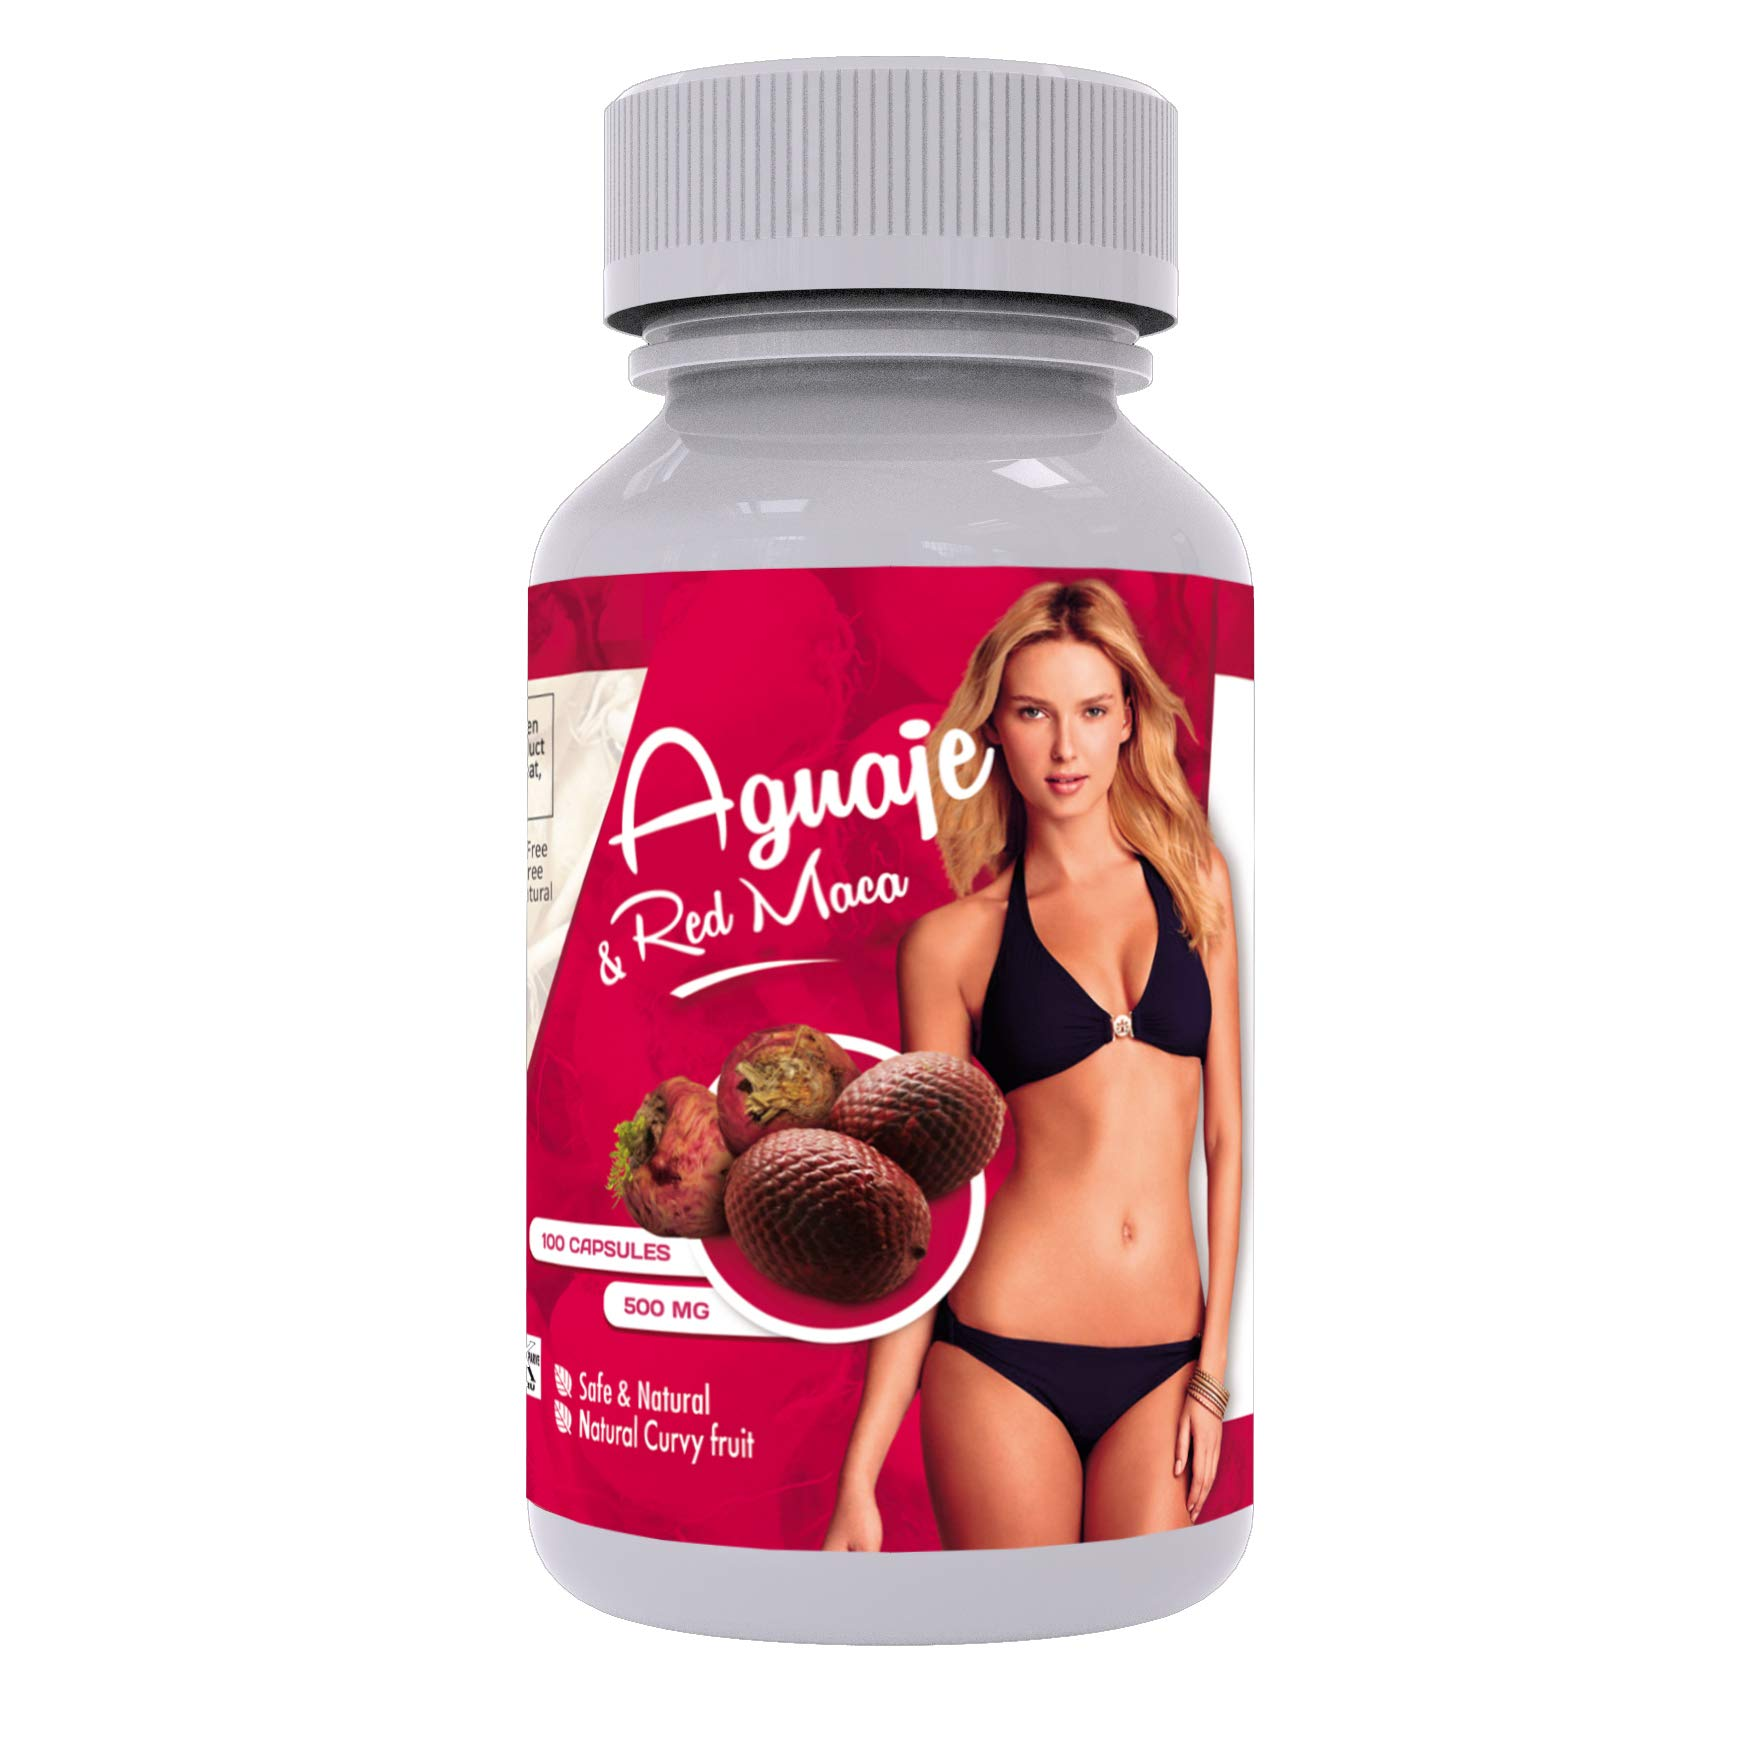 Curves Capsules for Women - Natural Supplement - 1000 mg per Serving - Butt and Breast Enhancement Pills - Aguaje and Red Maca Root from Peru - Kosher Certified - Free PDF Guide by Sikyriah